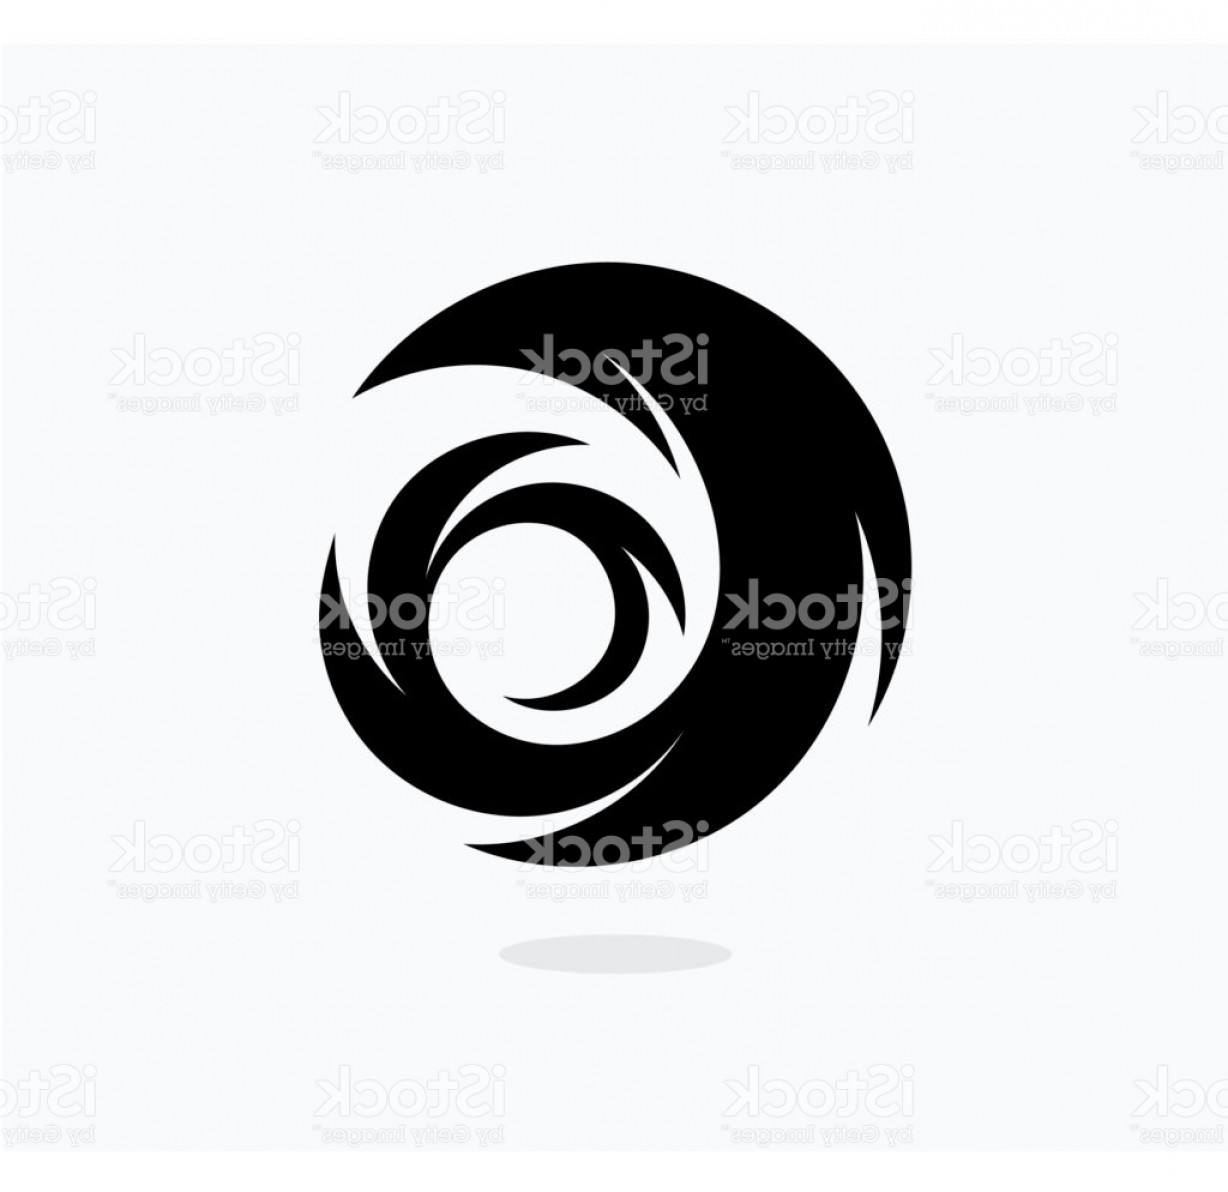 Hurricane Vector Art: Hurricane Icon Template Swirl Vector Illustration Abstract Tail Black Icon Gm